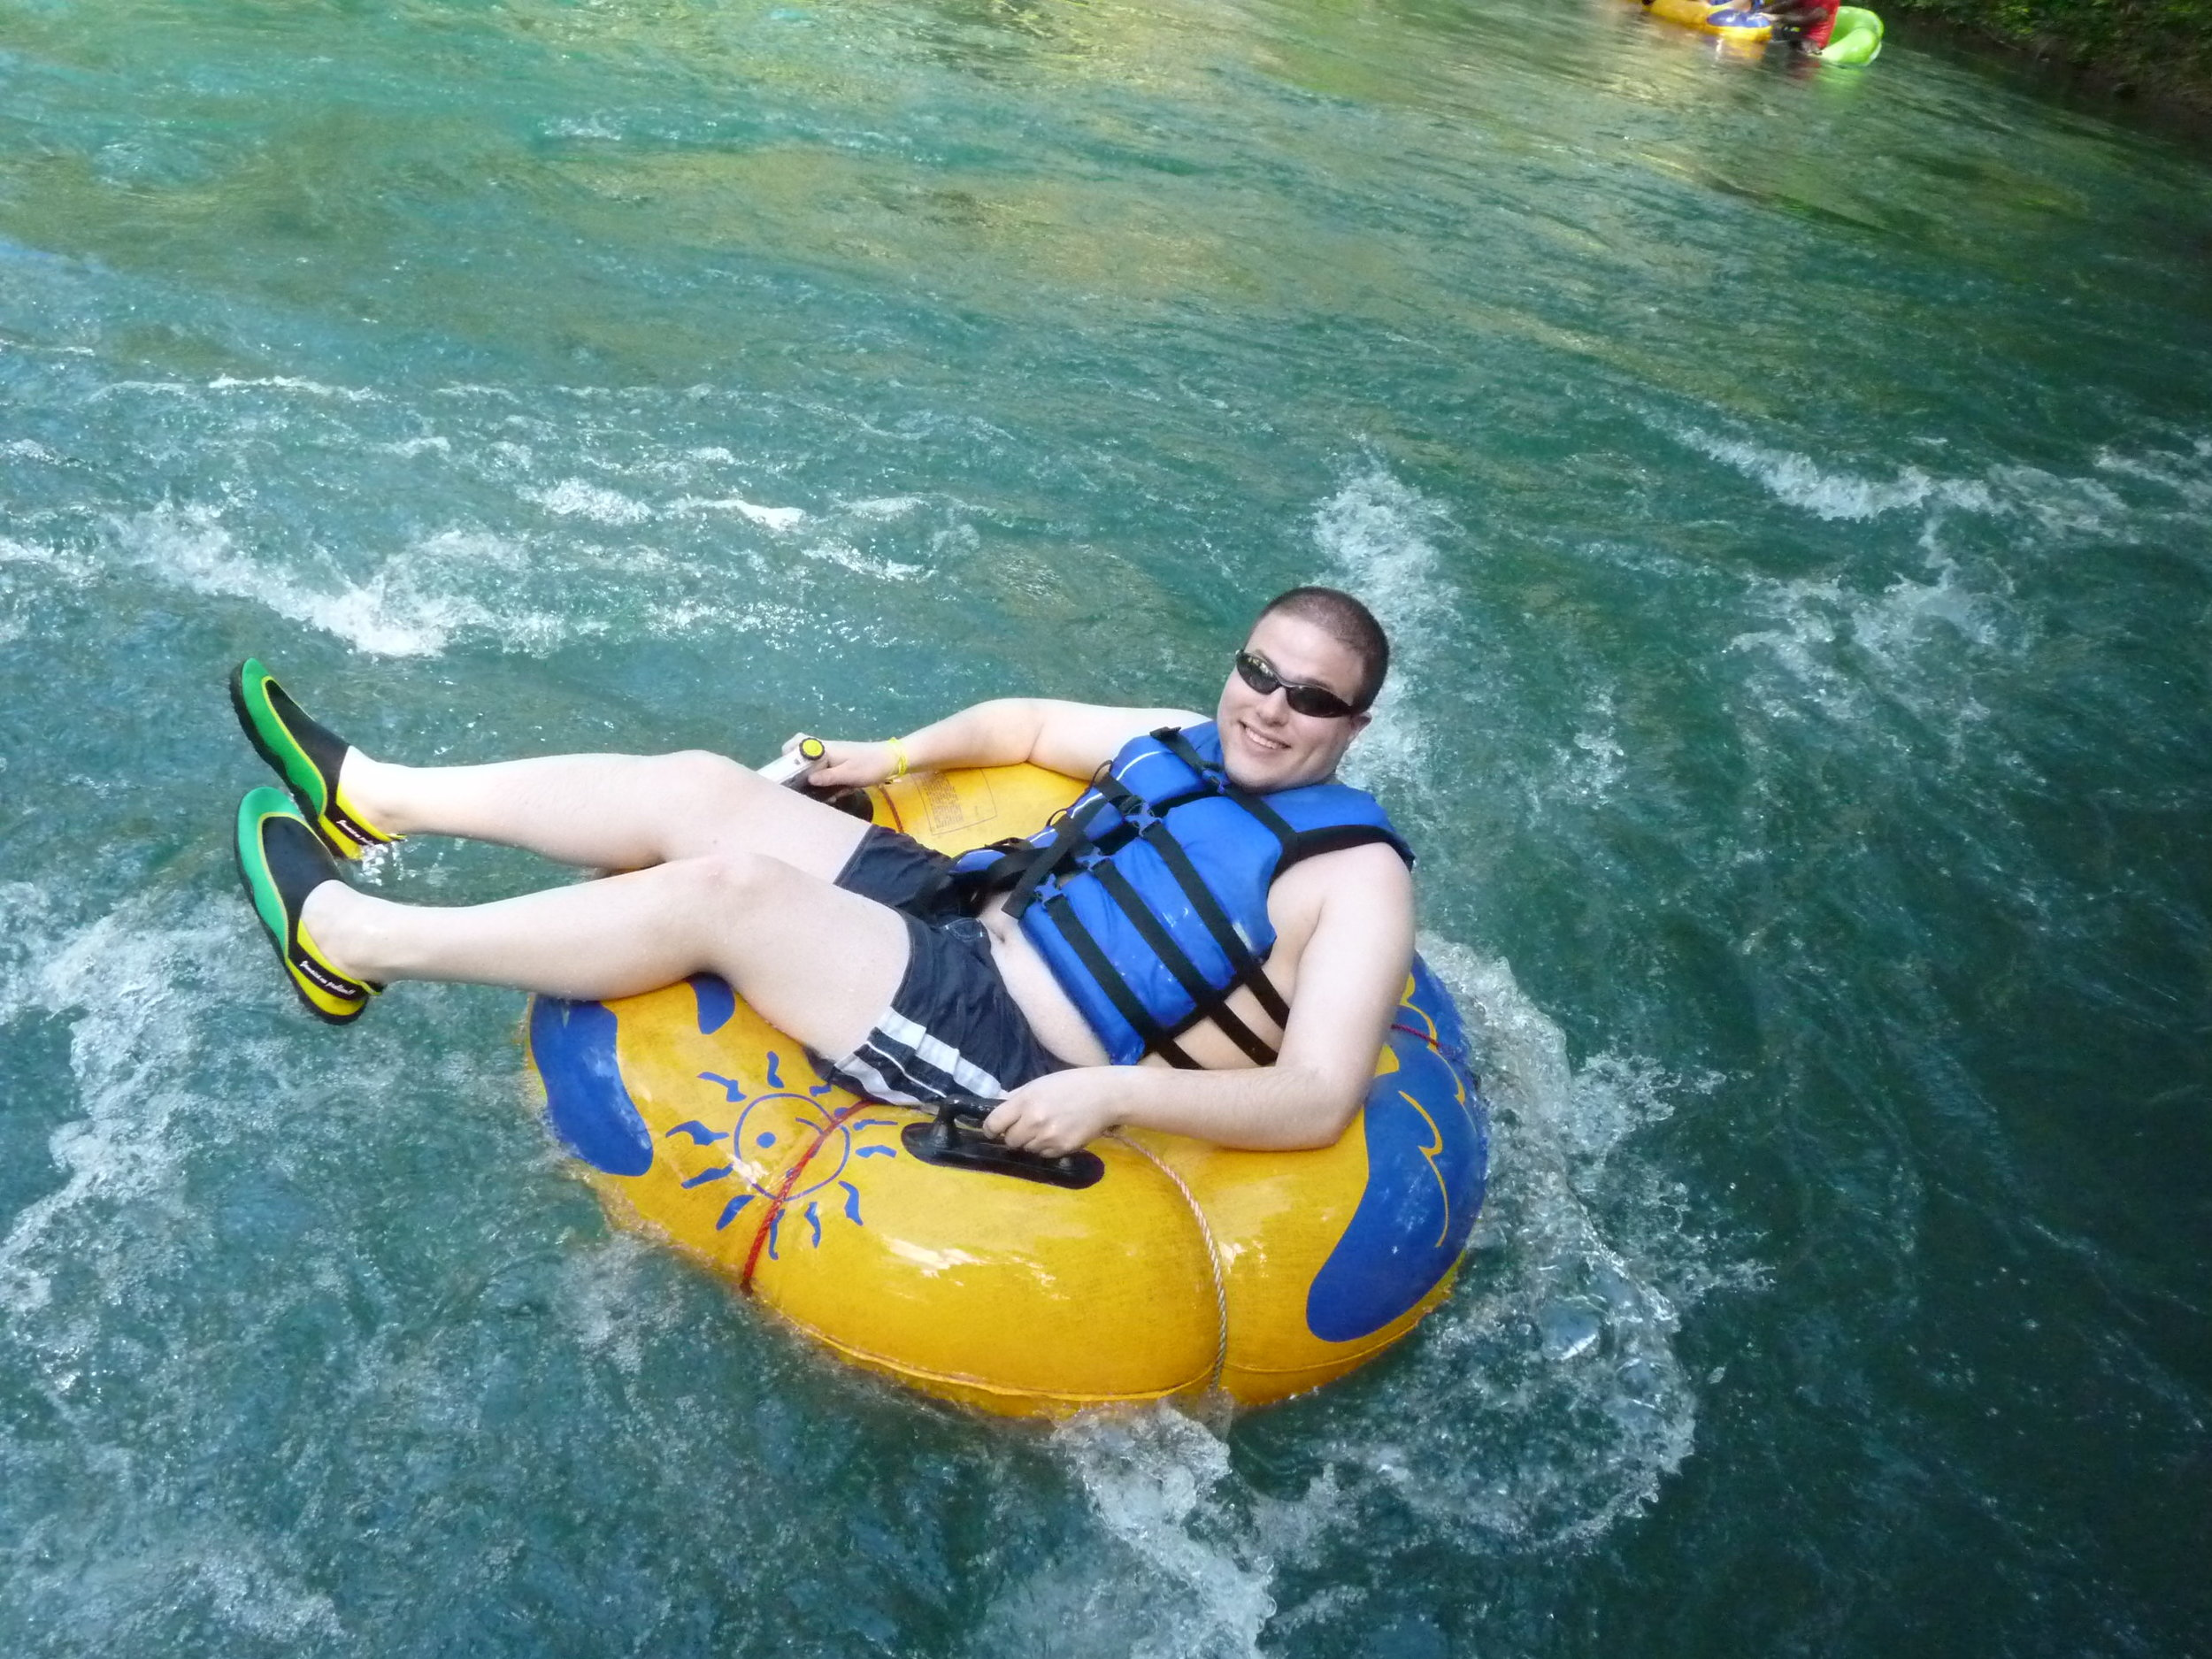 Steve tubing on Water.JPG